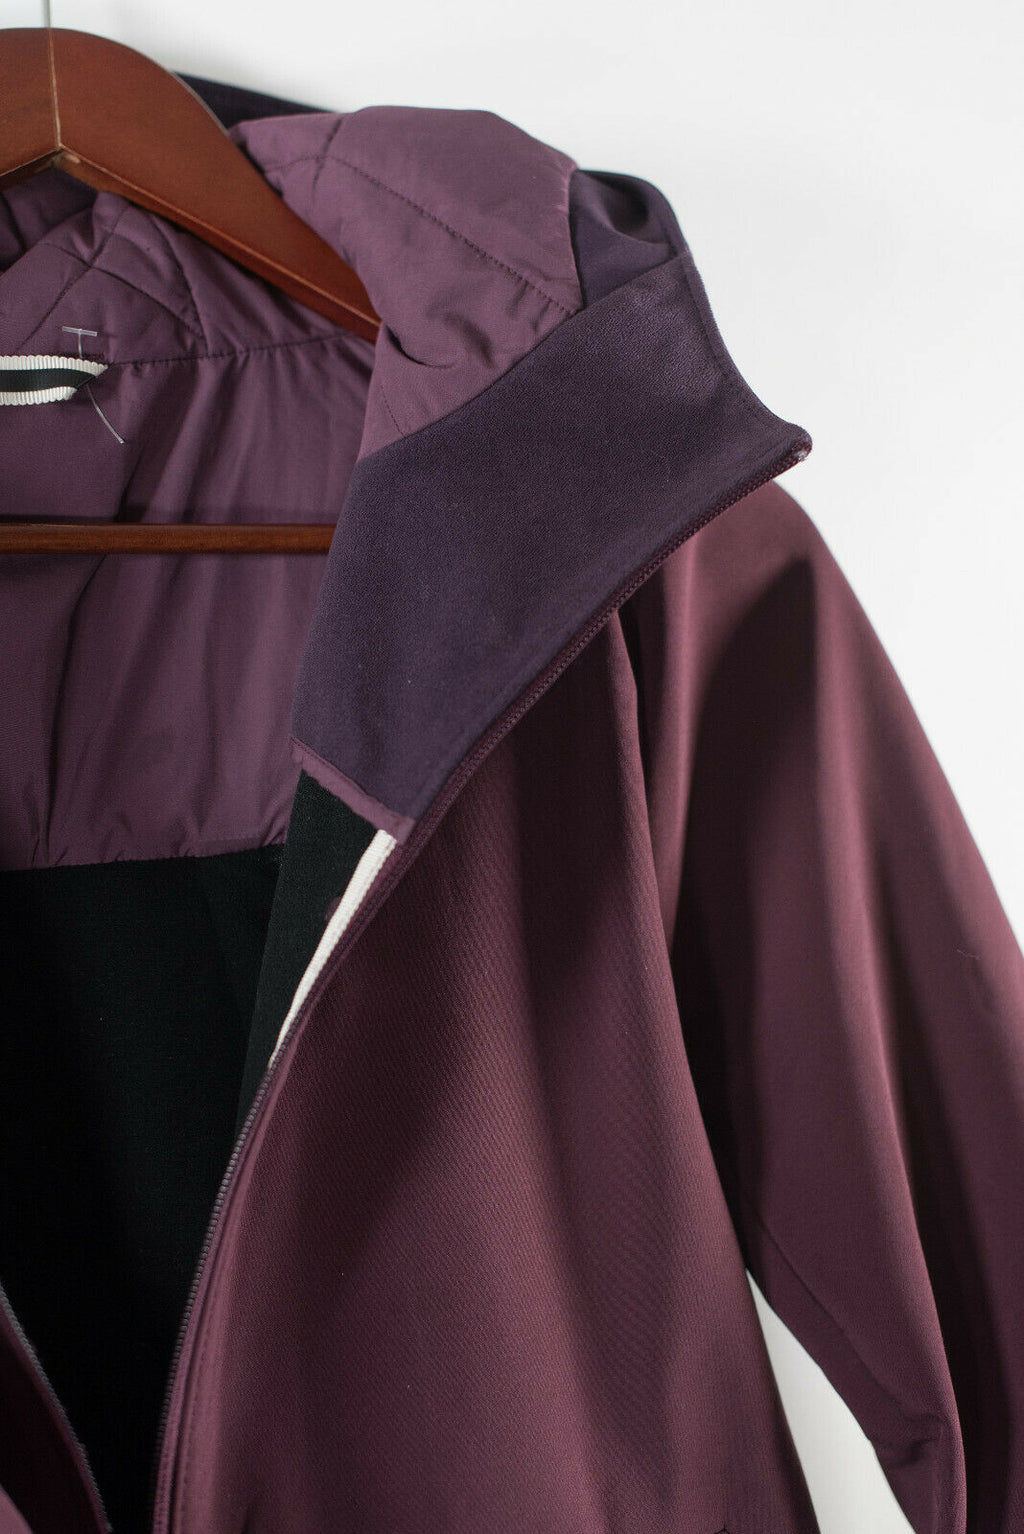 Lululemon Womens S Burgundy Purple Coat Jacket Soft Shell Water Resistant Fleece